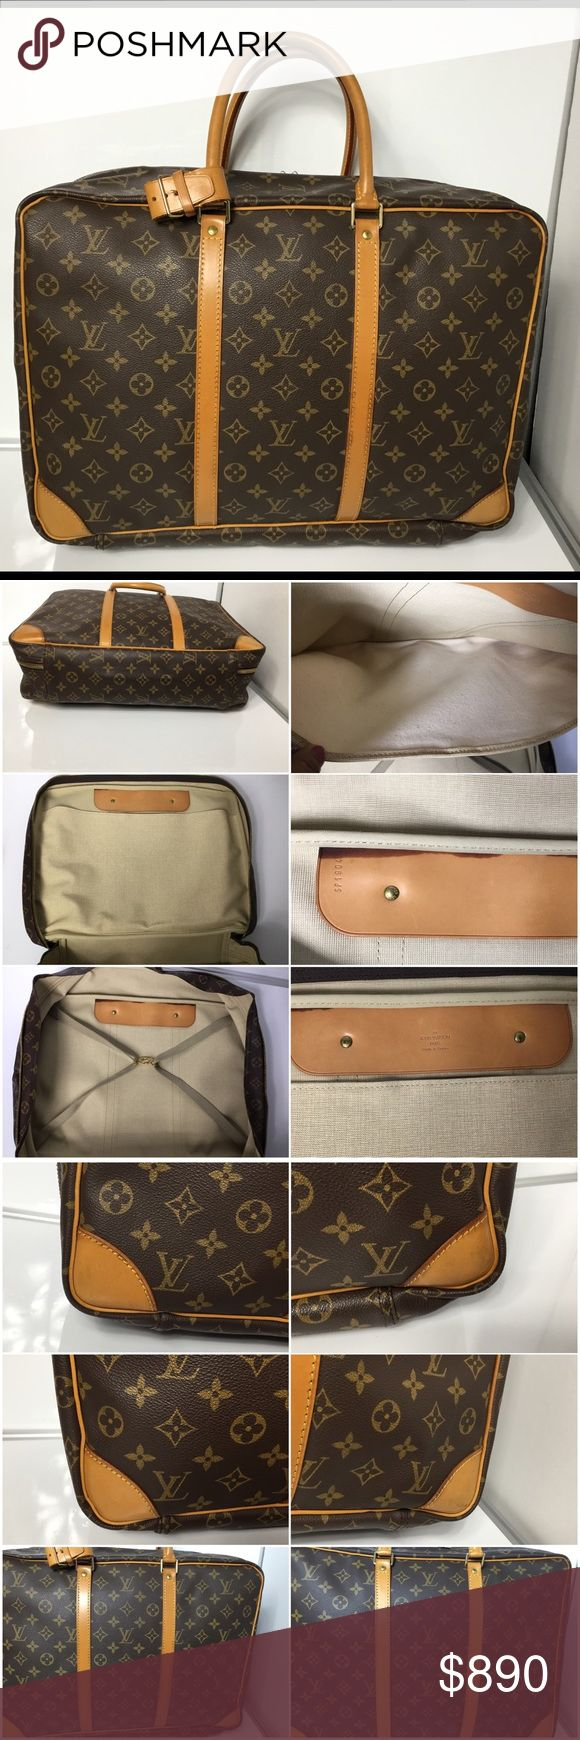 100% Authentic Louis Vuitton Monogram Sirius 45 100% Authentic Louis Vuitton Monogram Sirius 45 comes with Extender, Lock and Key Traveling Bag Pre-Owned Bag in very good used condition. Inside has stains. ( see pictures ) no rip, no stain on the canvas. Strap, Handle, Leather has stain, marks and normal sign of use. MADE IN FRANCE - DATE CODE SP1904 ( October 1994 )  Please check all the pictures. -In order to avoid unnecessary return. 100% authentic or your money back - no return sold as…